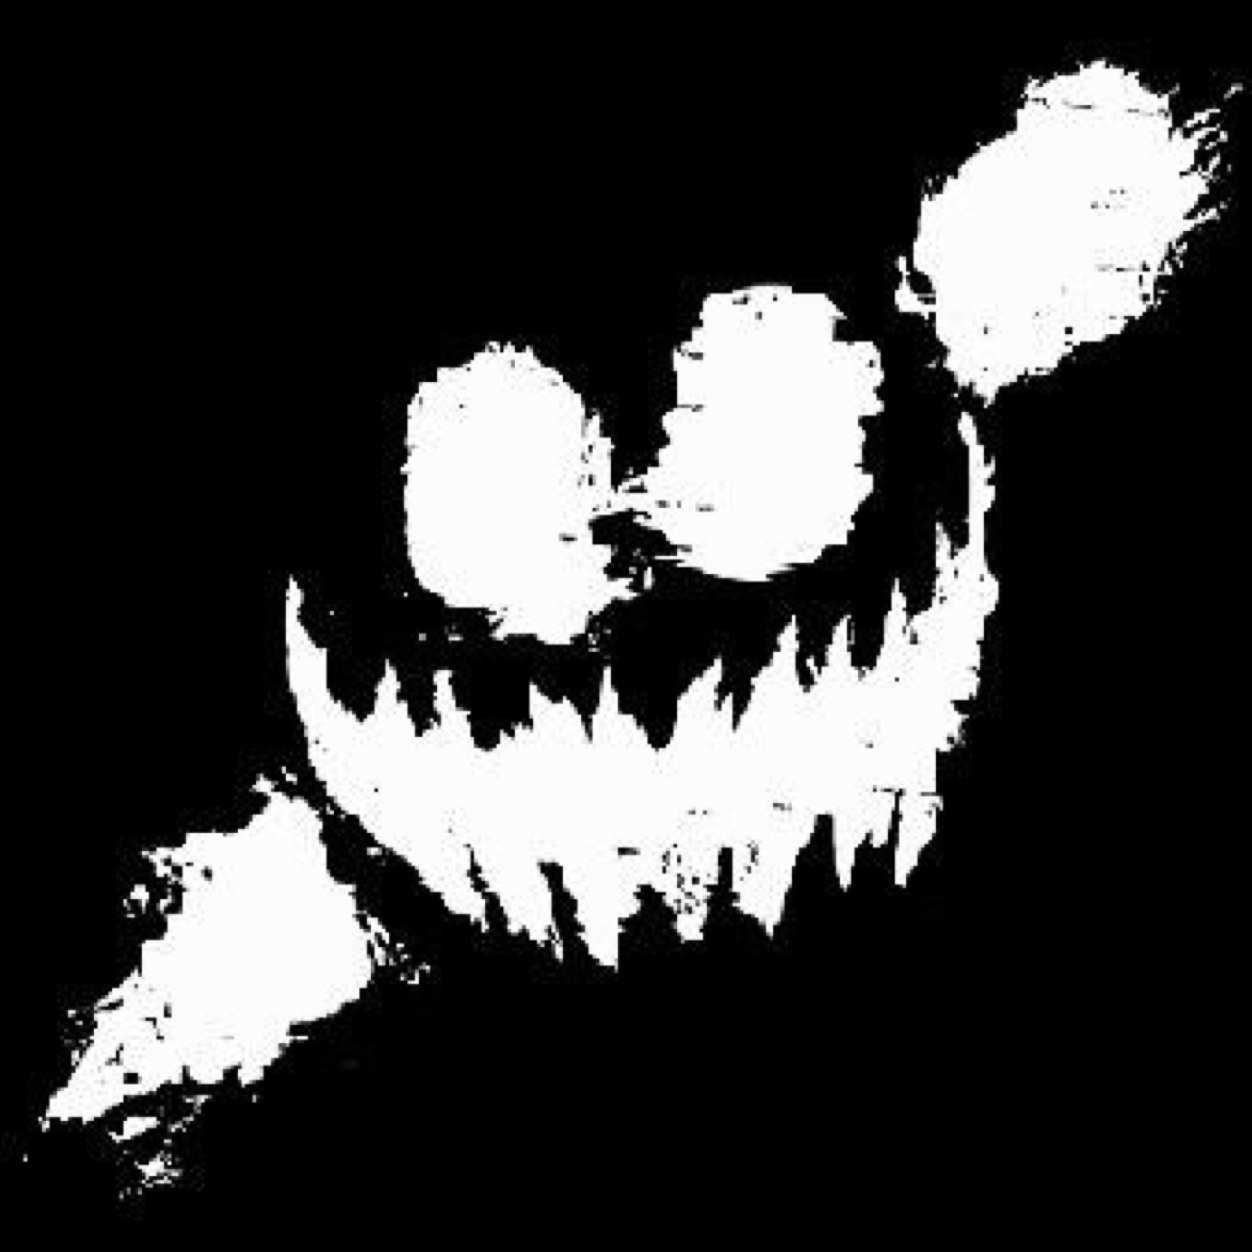 Knife Party Backgrounds on Wallpapers Vista